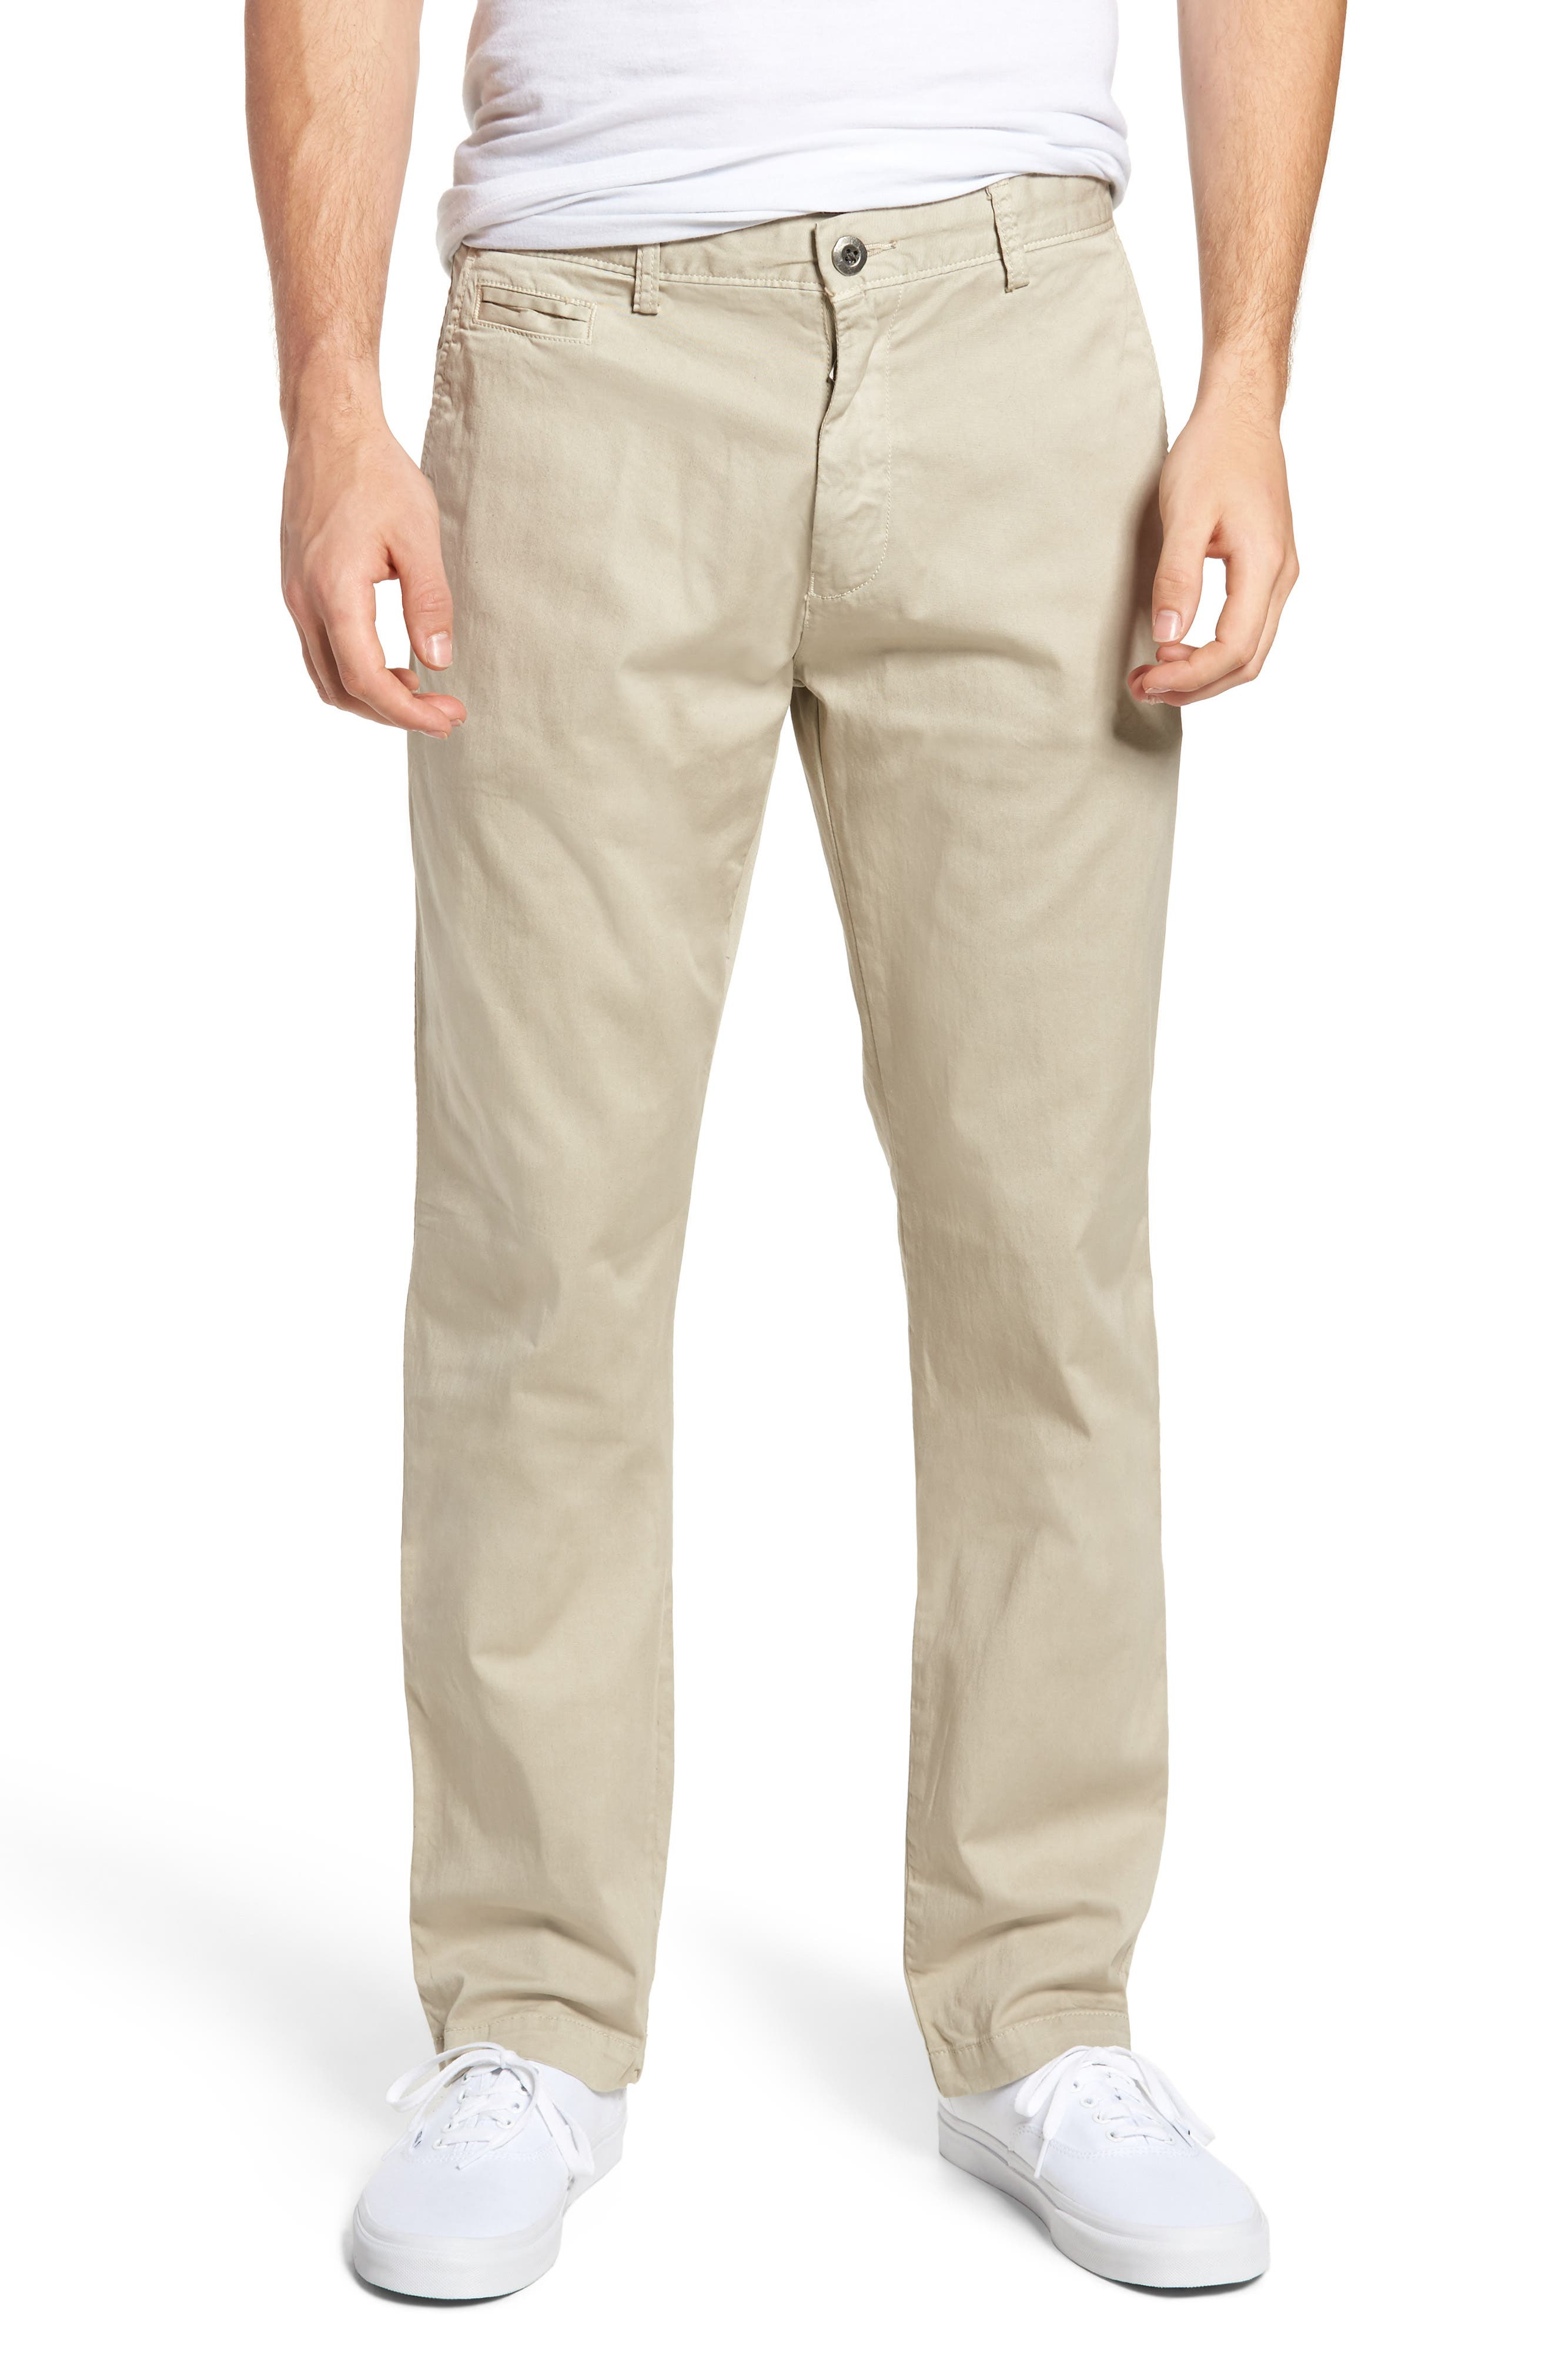 Main Image - Original Paperbacks Belmont Stretch Chino Pants